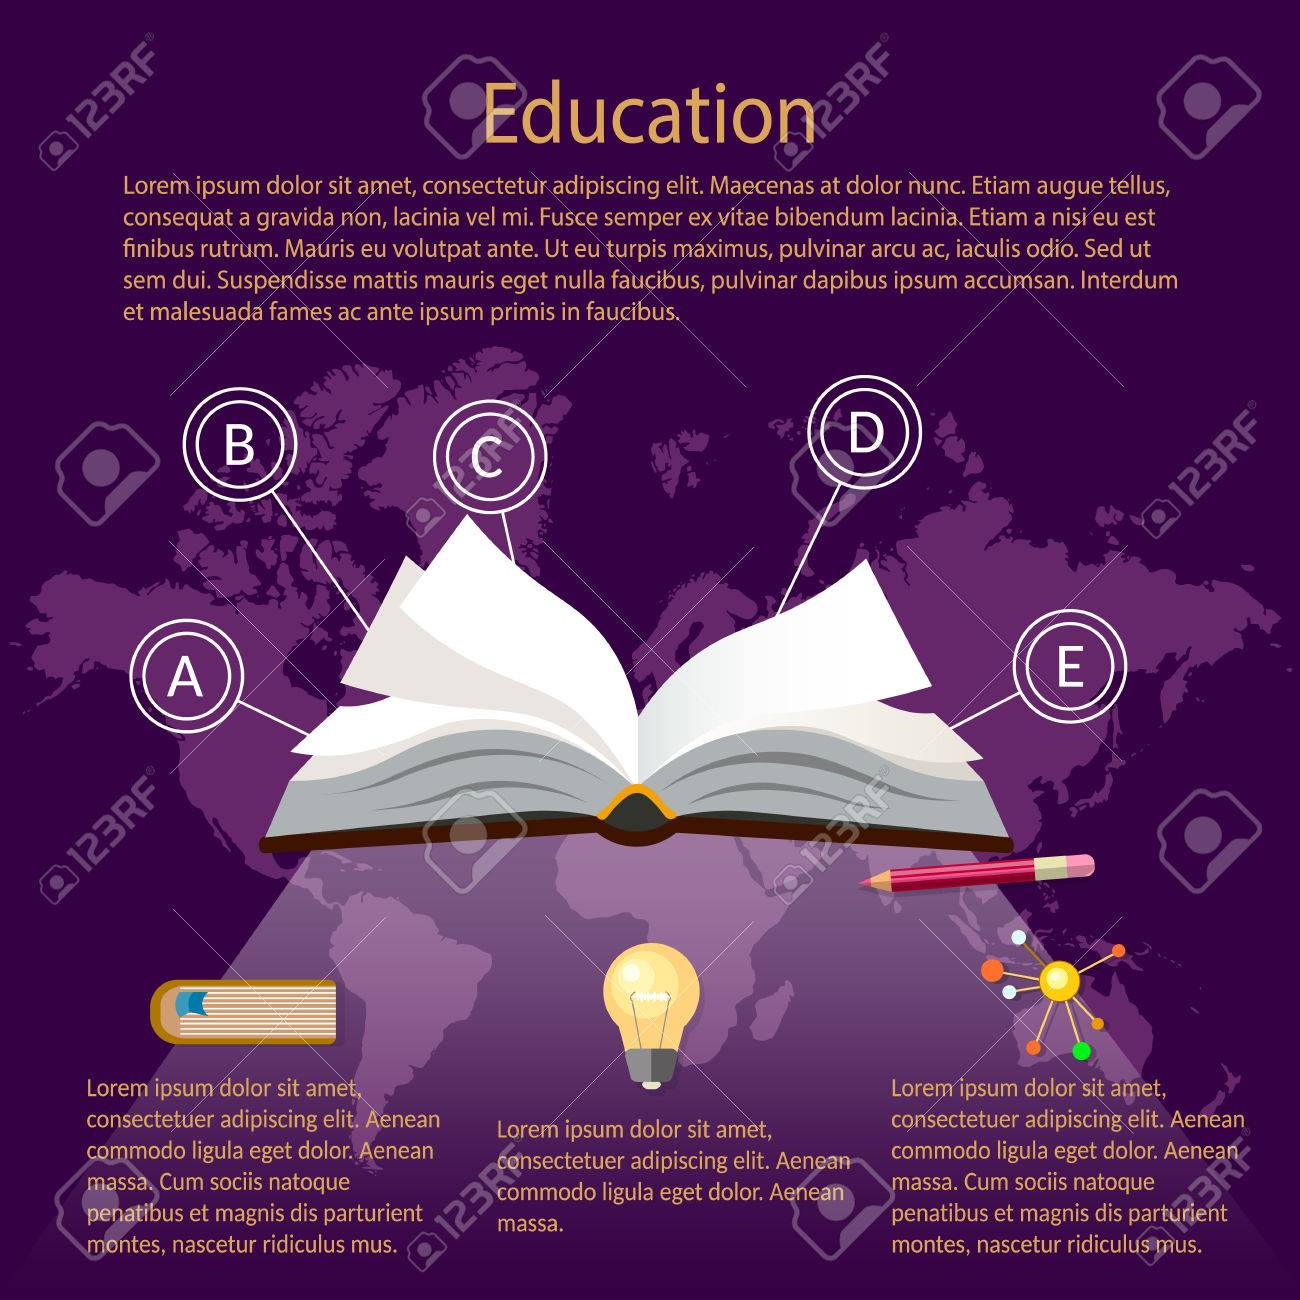 Education infographics open book of knowledge world map purple education infographics open book of knowledge world map purple background vector illustration stock vector 53929458 gumiabroncs Image collections